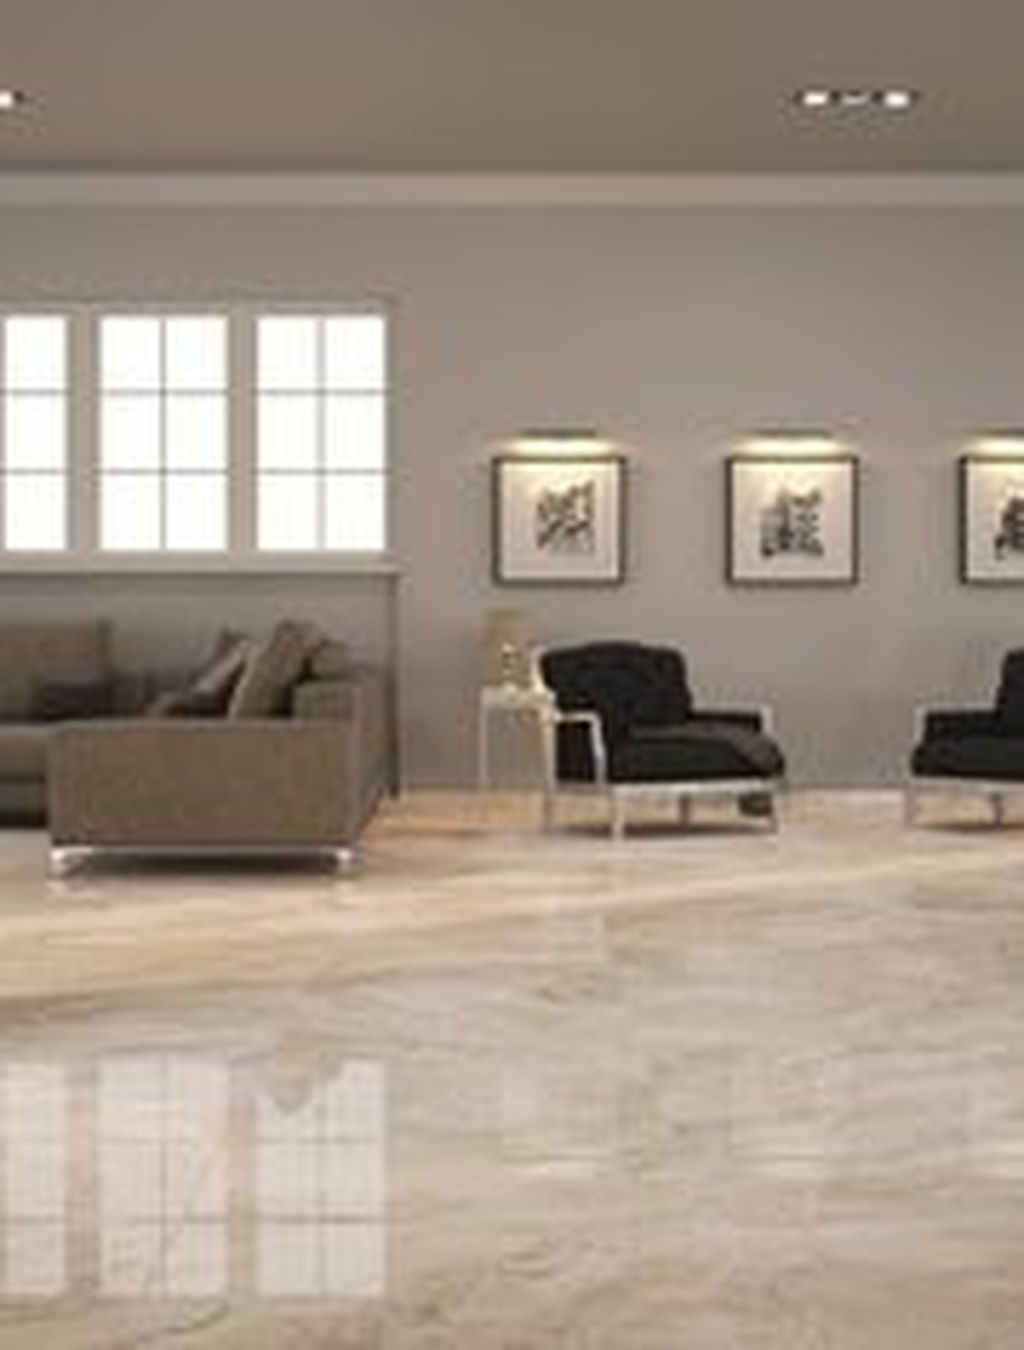 31 Chic Living Room Design Ideas With Floor Granite Tile To Have In 2020 Large Floor Tiles Living Room Tiles Tiles Design For Hall